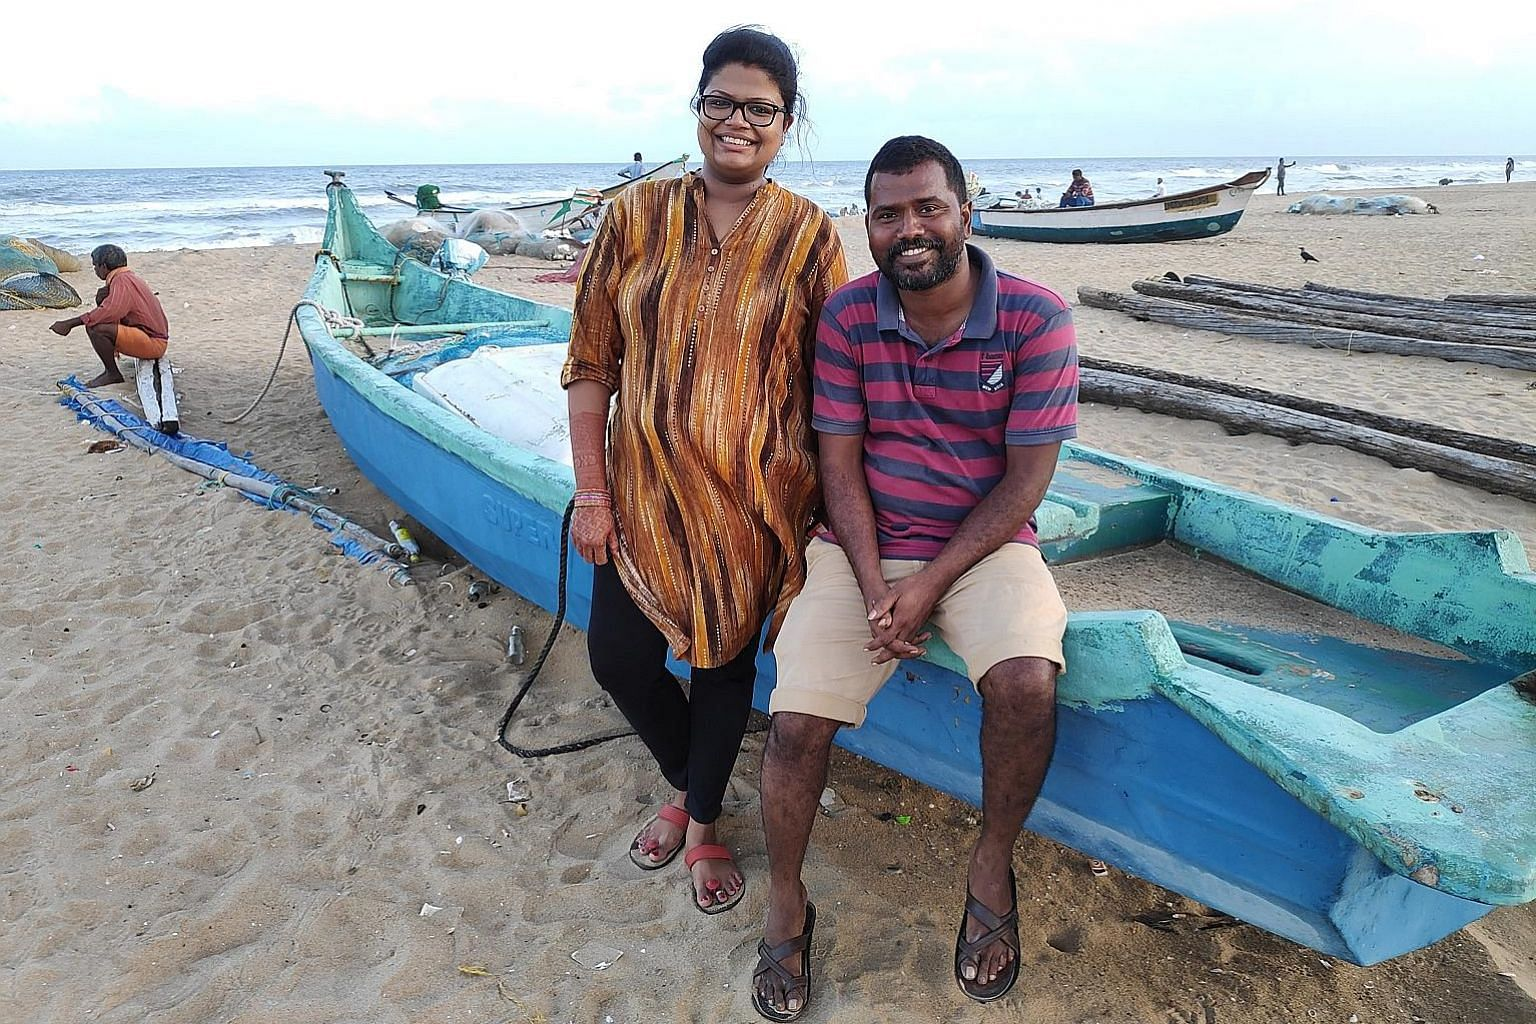 Urur Kuppam fisherman Payalam, 52, showing his notebook with GPS coordinates of rocks and shorelines where migratory fish are found this season. He says bureaucrats who have never gone fishing must respect community knowledge. Ms Pooja Kumar and Mr K